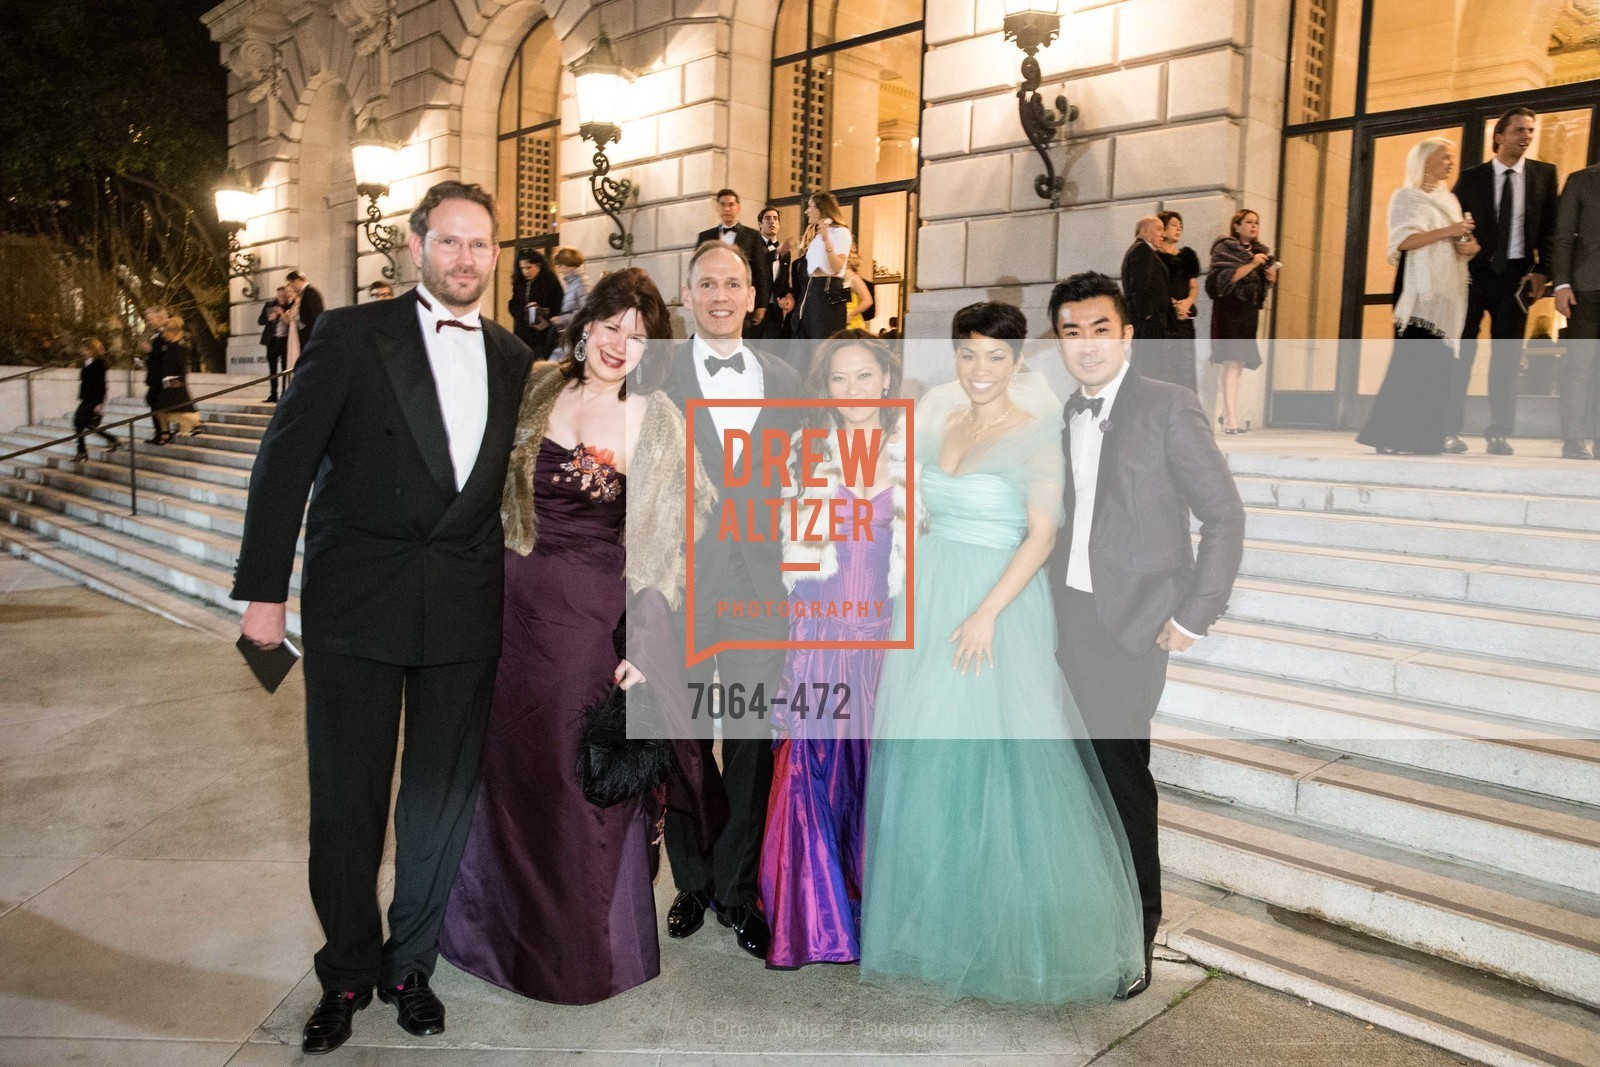 Elaine Mellis, Elizabeth Fullerton, Moanalani Jeffrey, SAN FRANCISCO BALLET Opening Night Gala: PHENOMENAL - Intermission & Dinner, US. SF City Hall, January 22nd, 2014,Drew Altizer, Drew Altizer Photography, full-service agency, private events, San Francisco photographer, photographer california